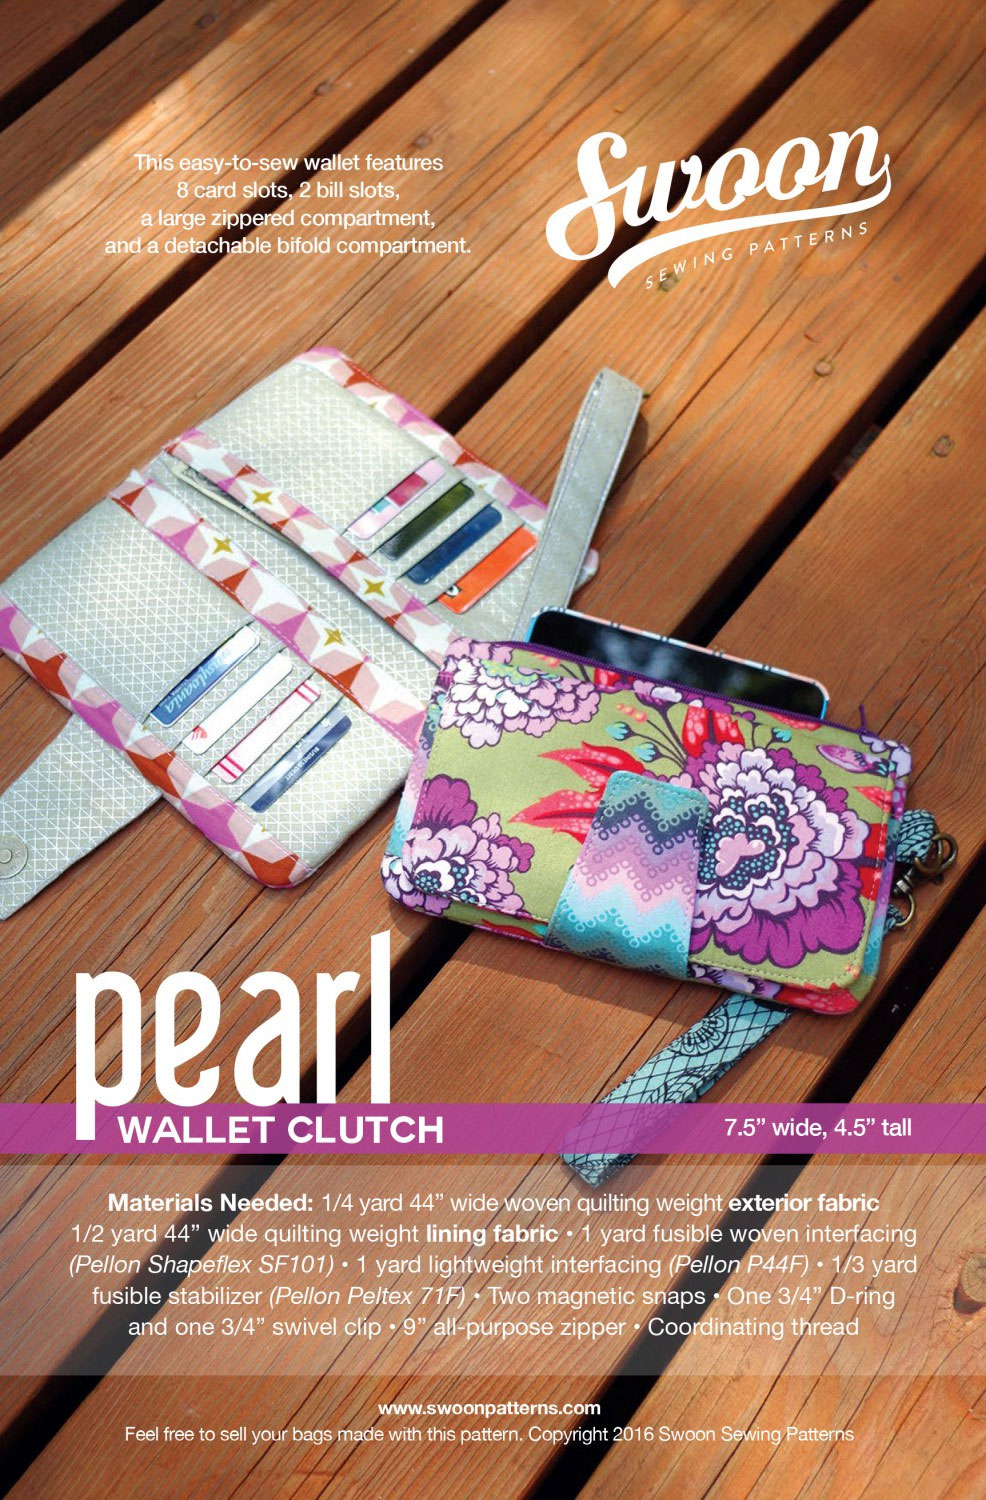 Pearl-Wallet-Clutch-sewing-pattern-swoon-front